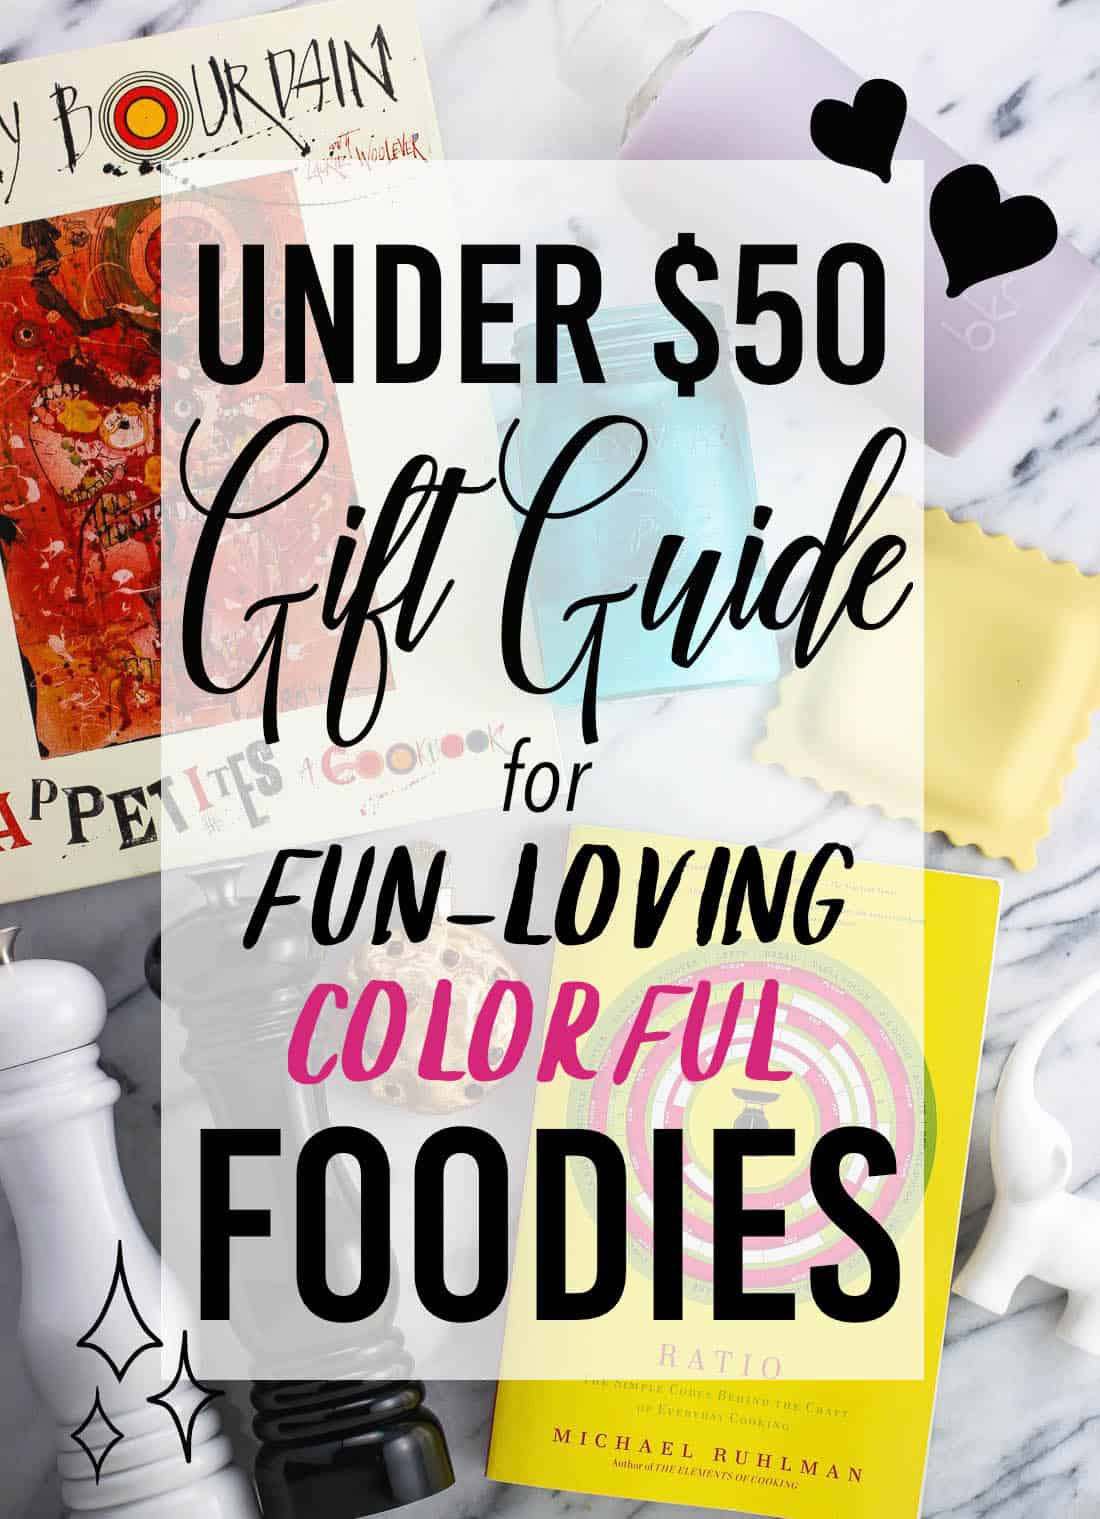 Under $50 Gift Guide for Foodies from My Sequined Life